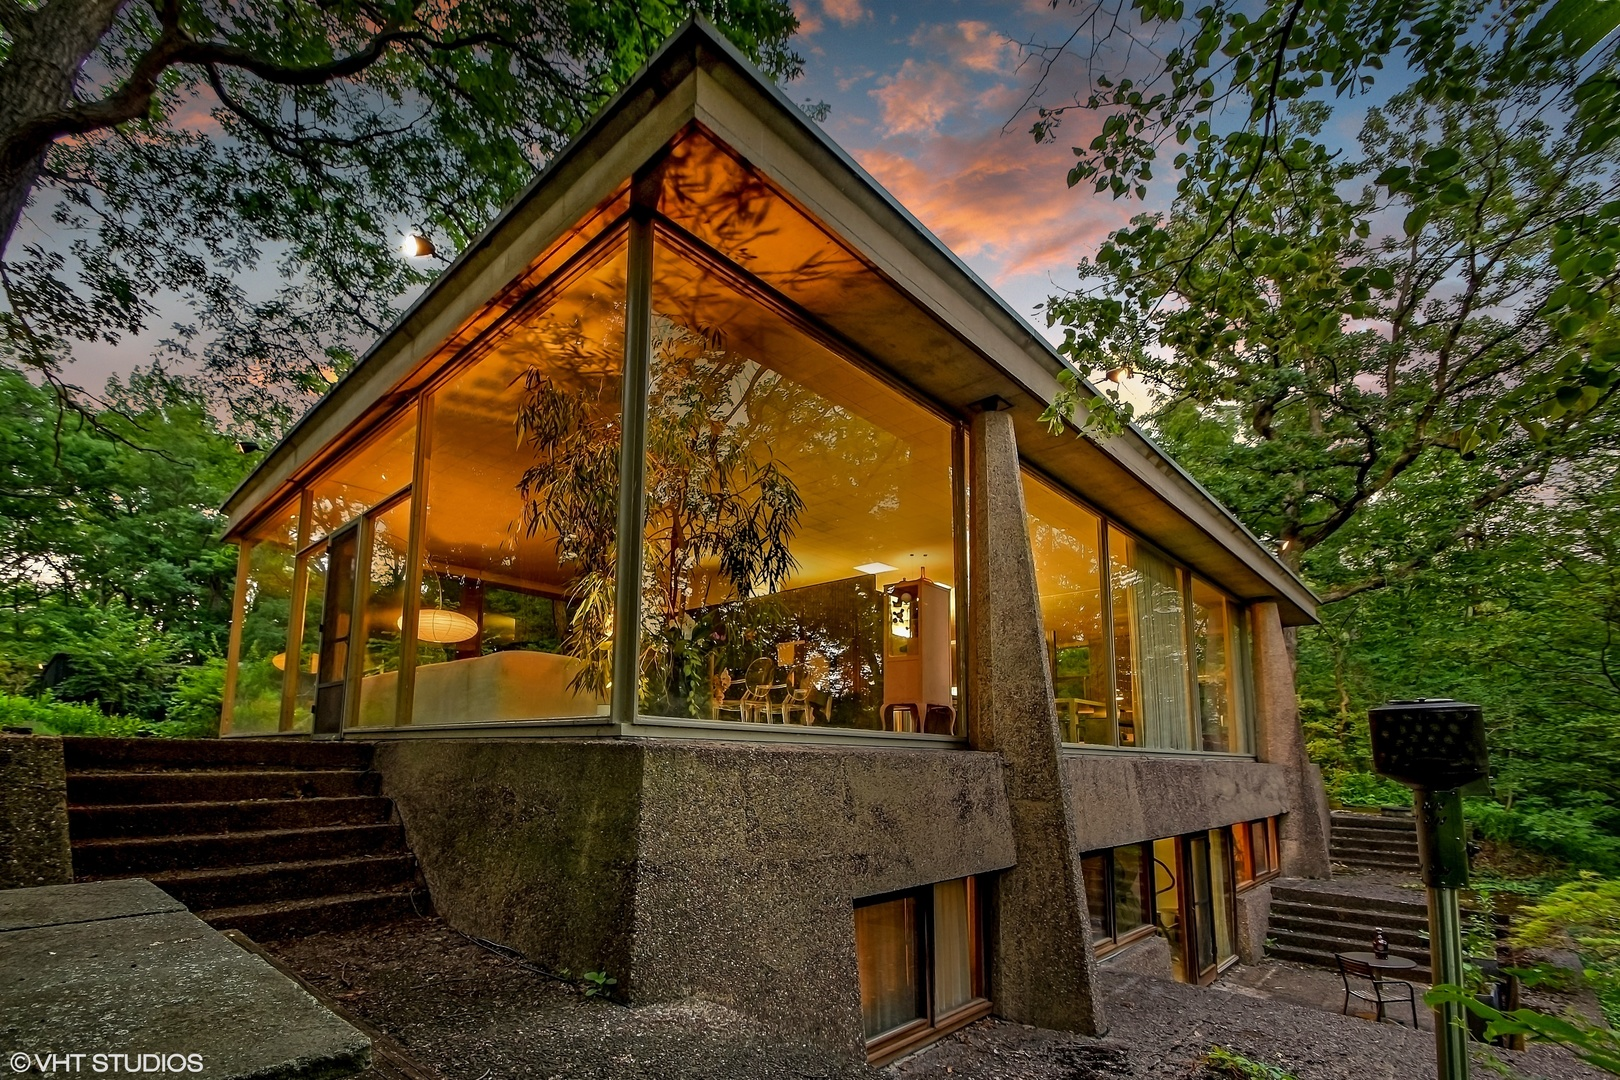 Modern Homes for Sale - Modern Illinois on Modern Glass Houses  id=80439